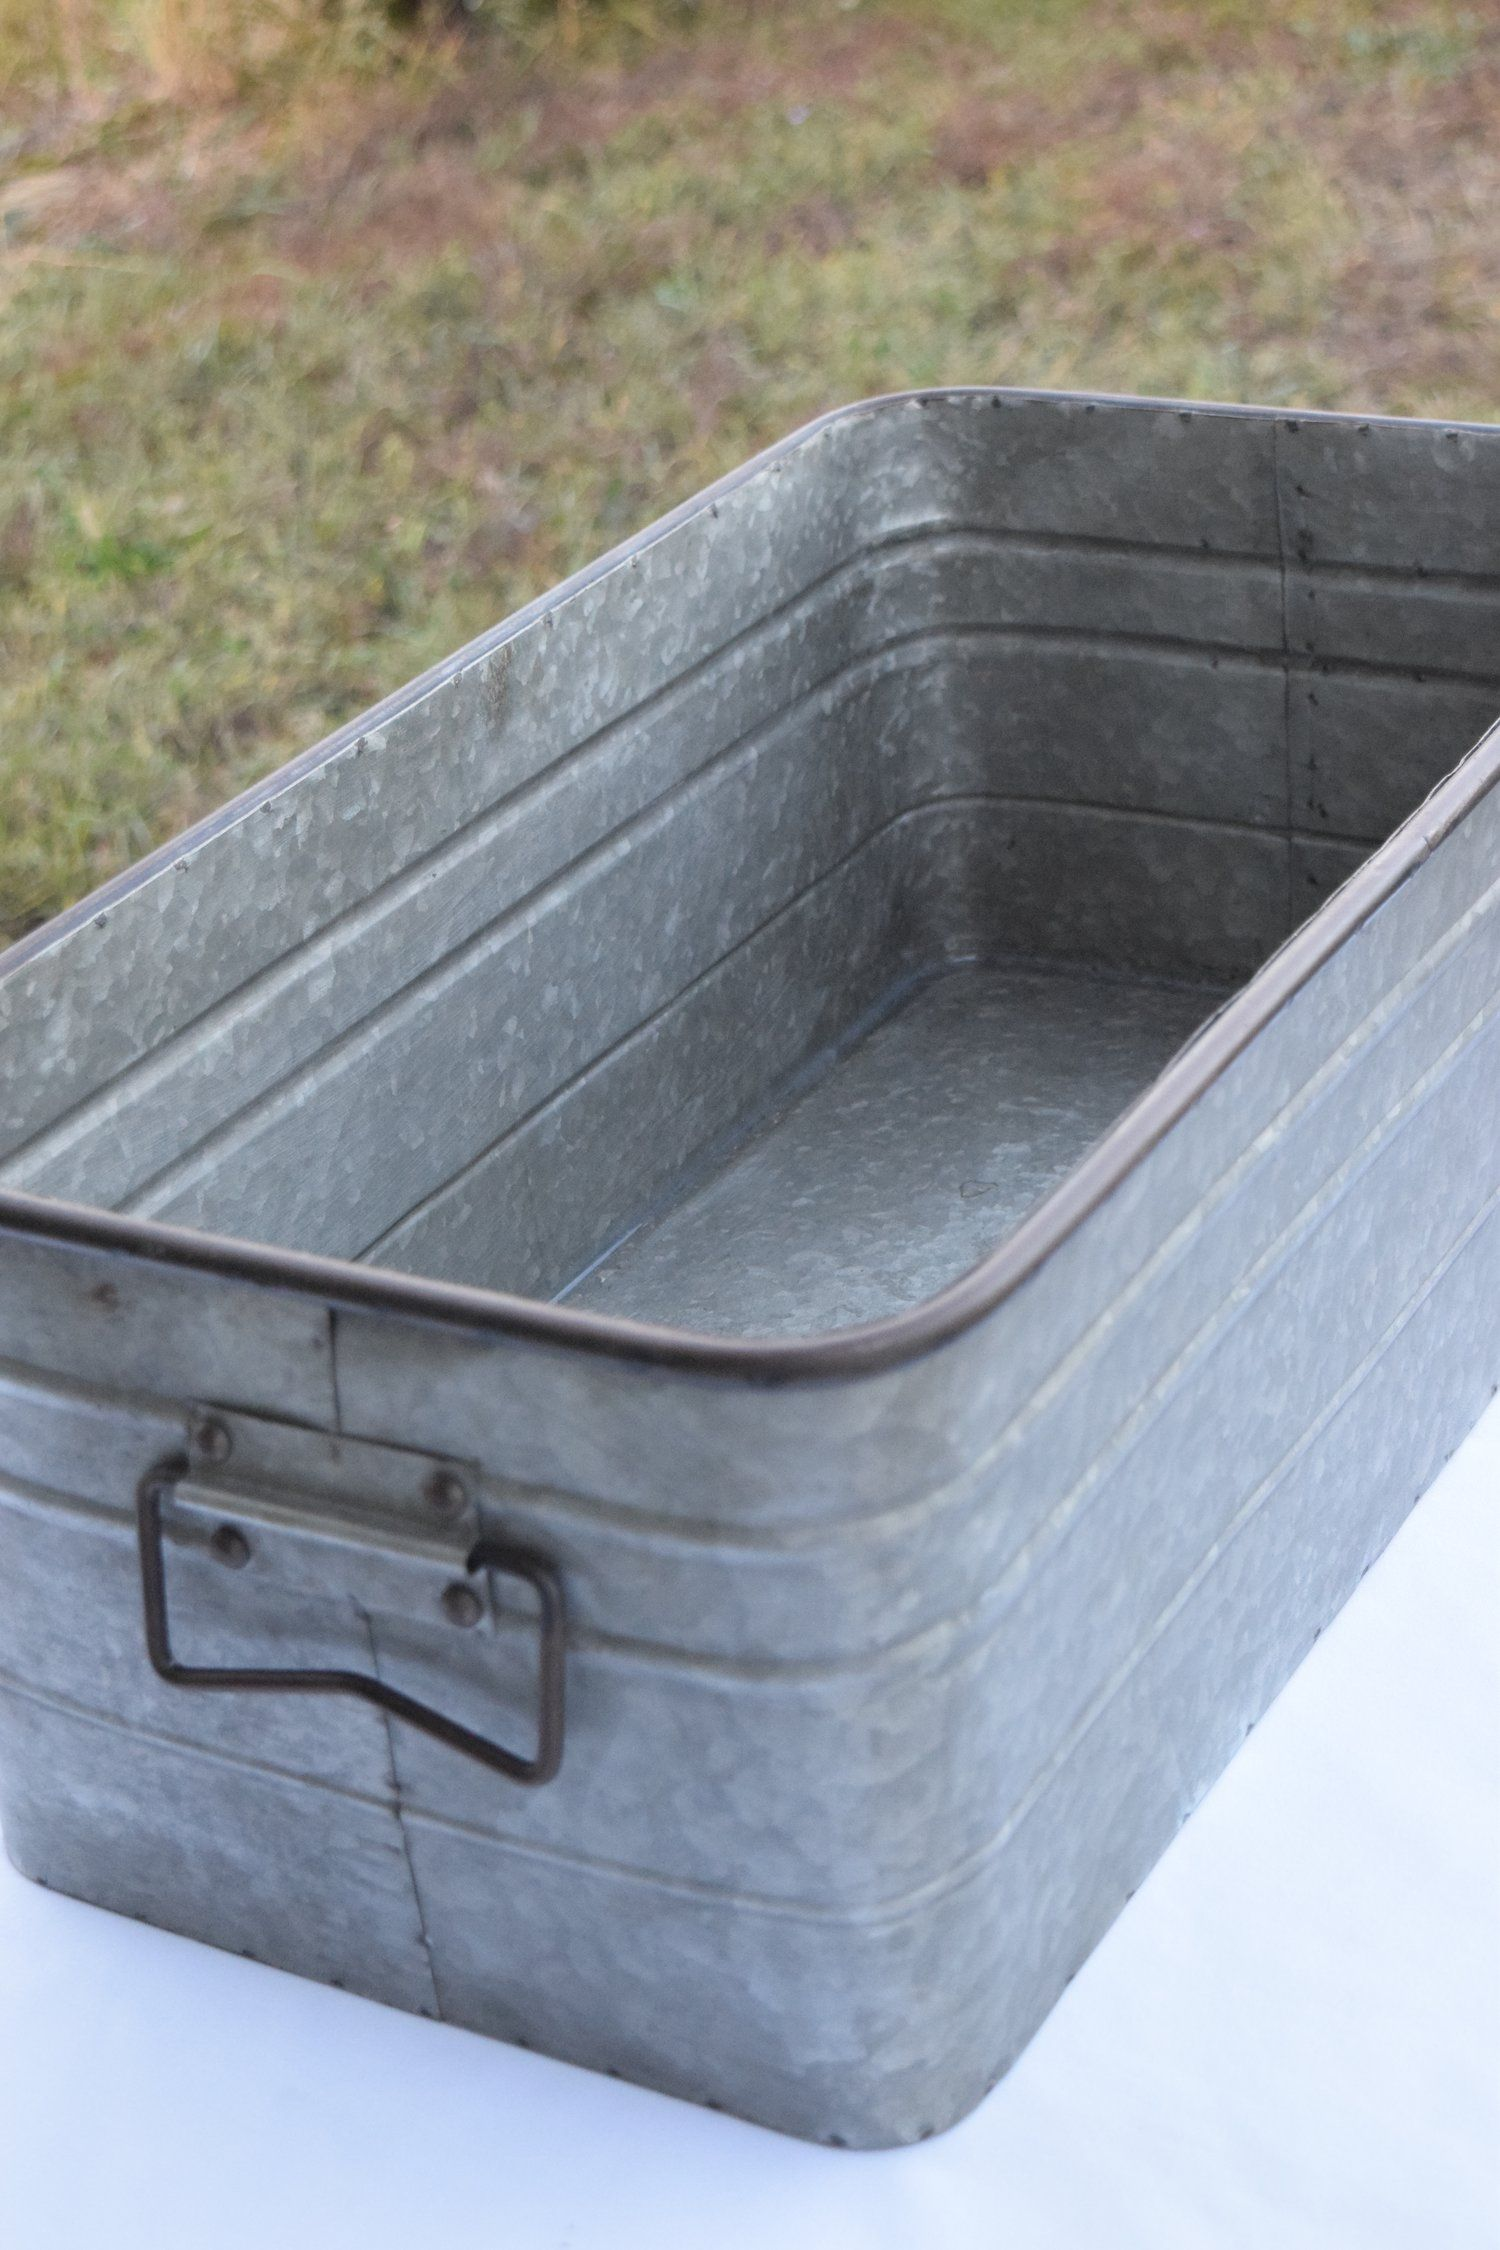 Rectangular Galvanized Tub Hrj Events Vintage Rentals In 2020 Galvanized Tub Galvanized Tub Sink Galvanized Decor